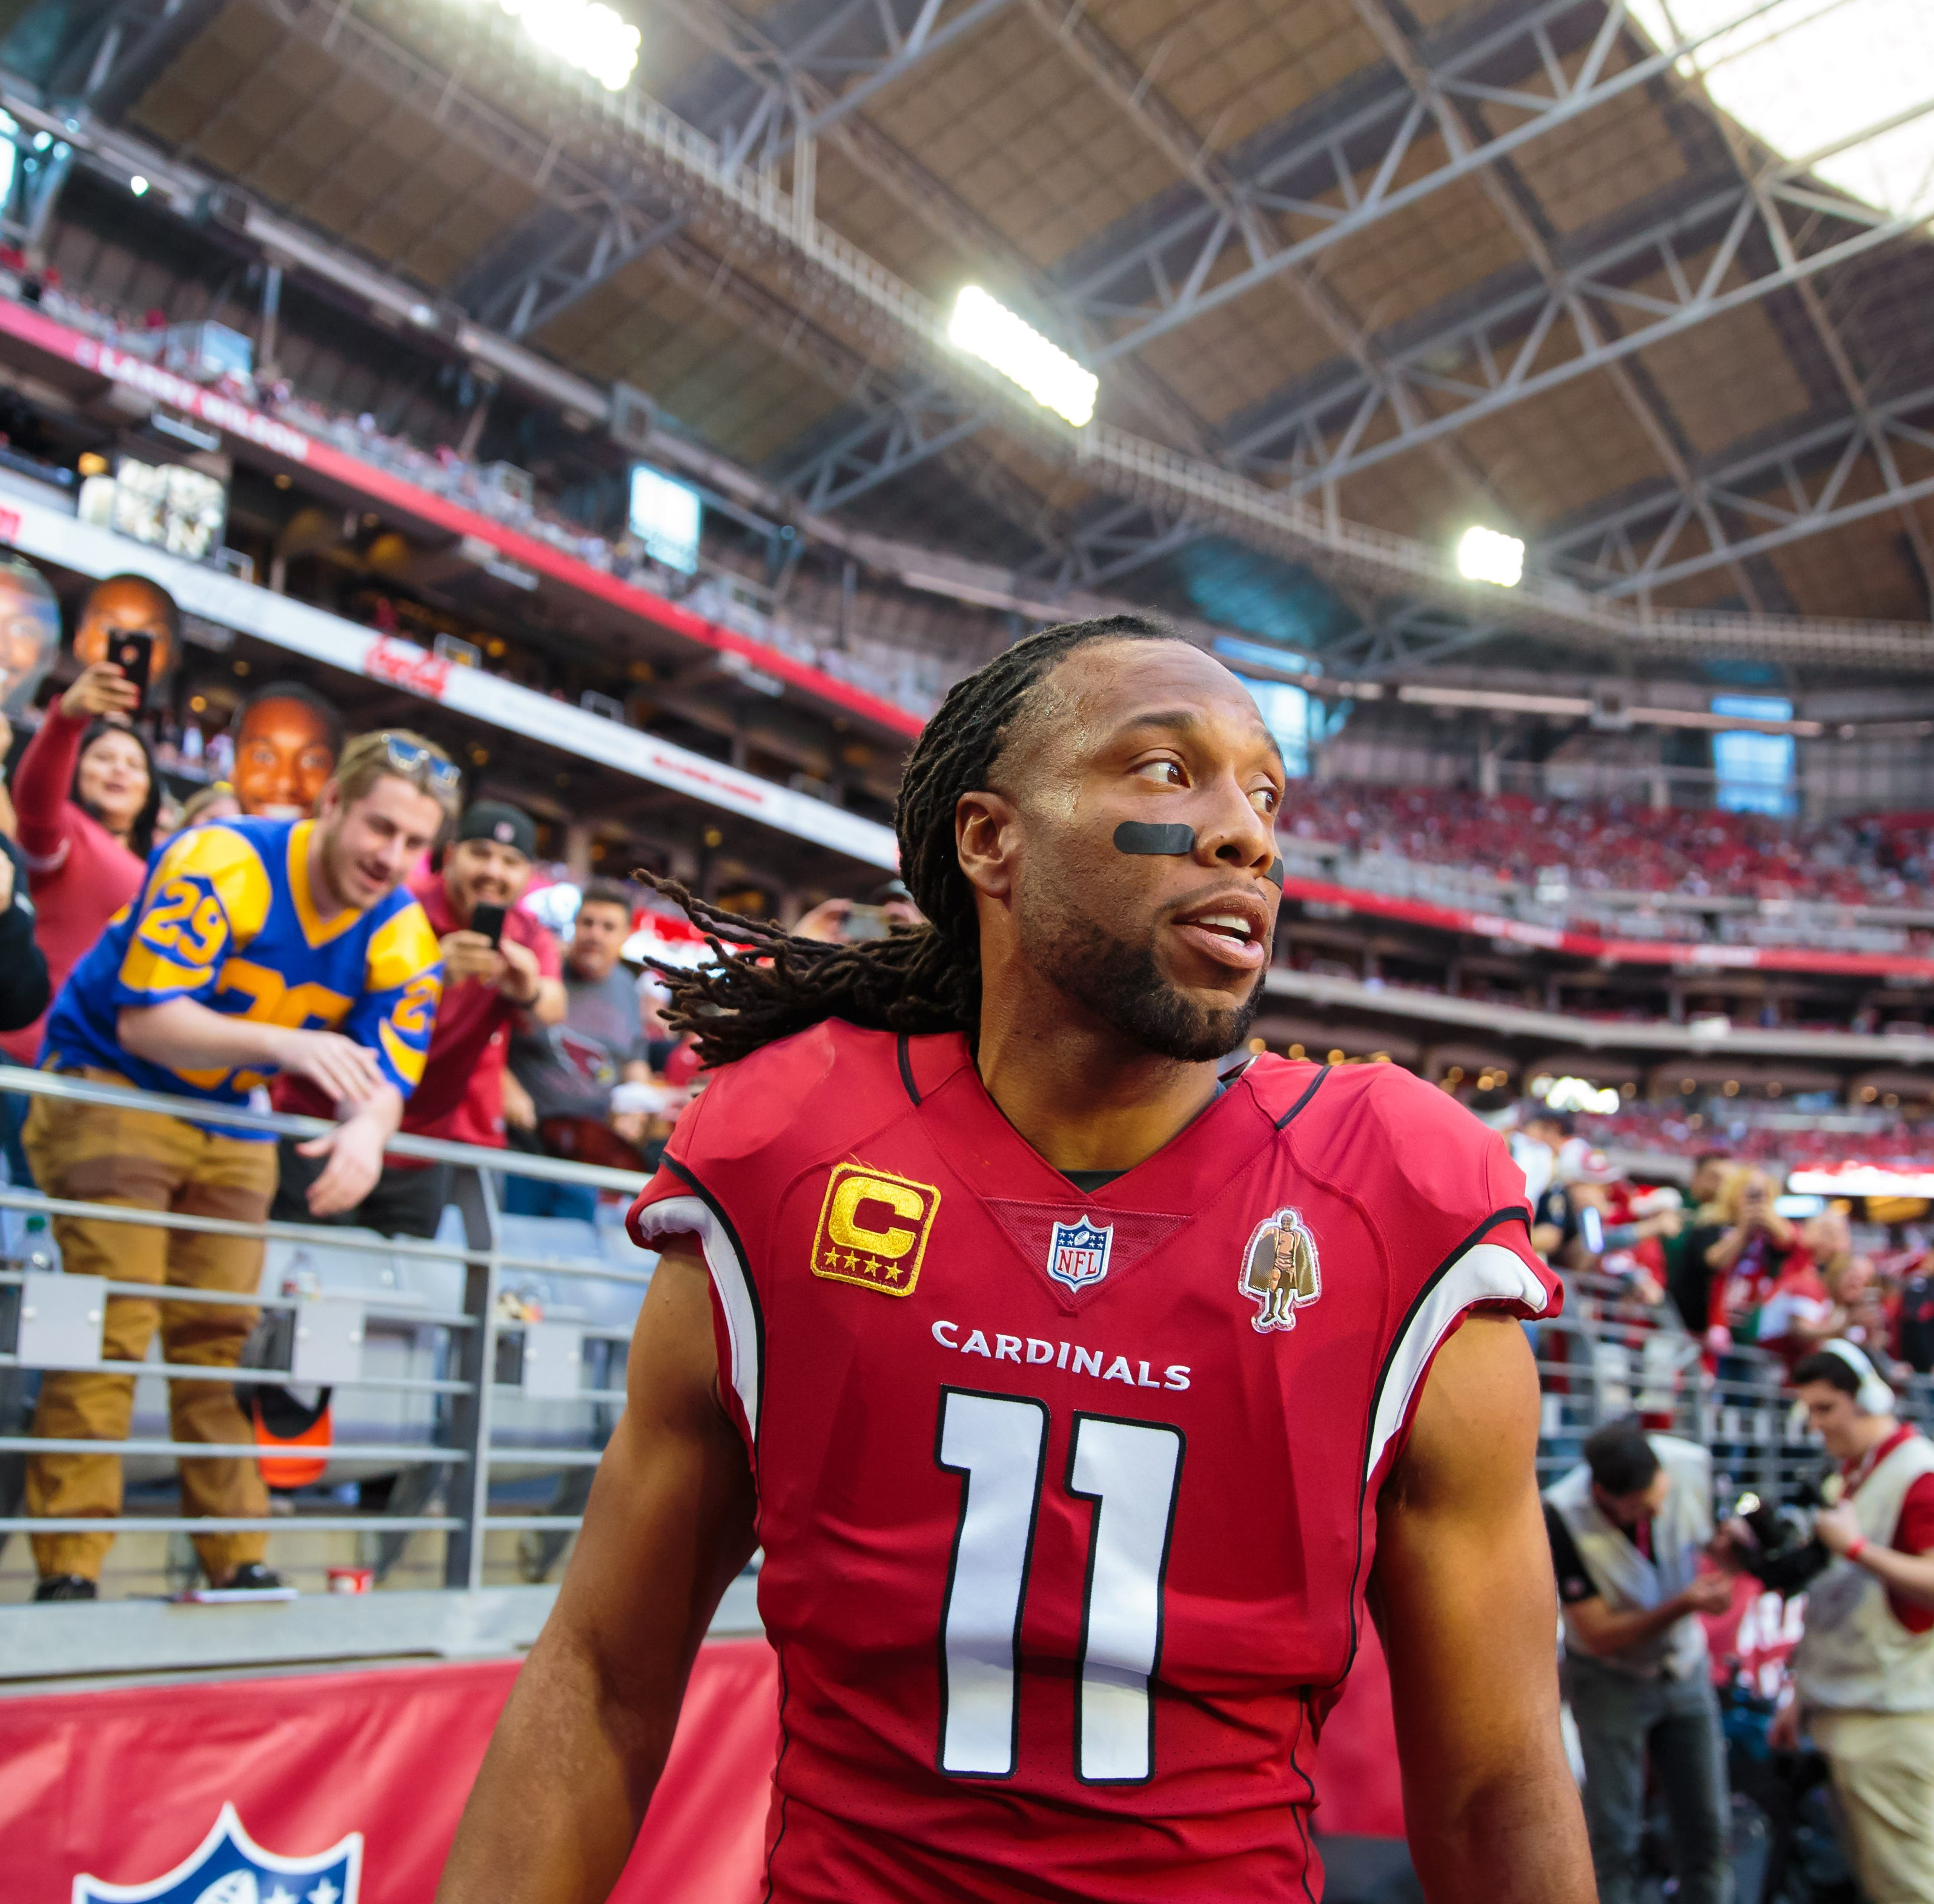 Larry Fitzgerald returning to Arizona Cardinals for 16th season